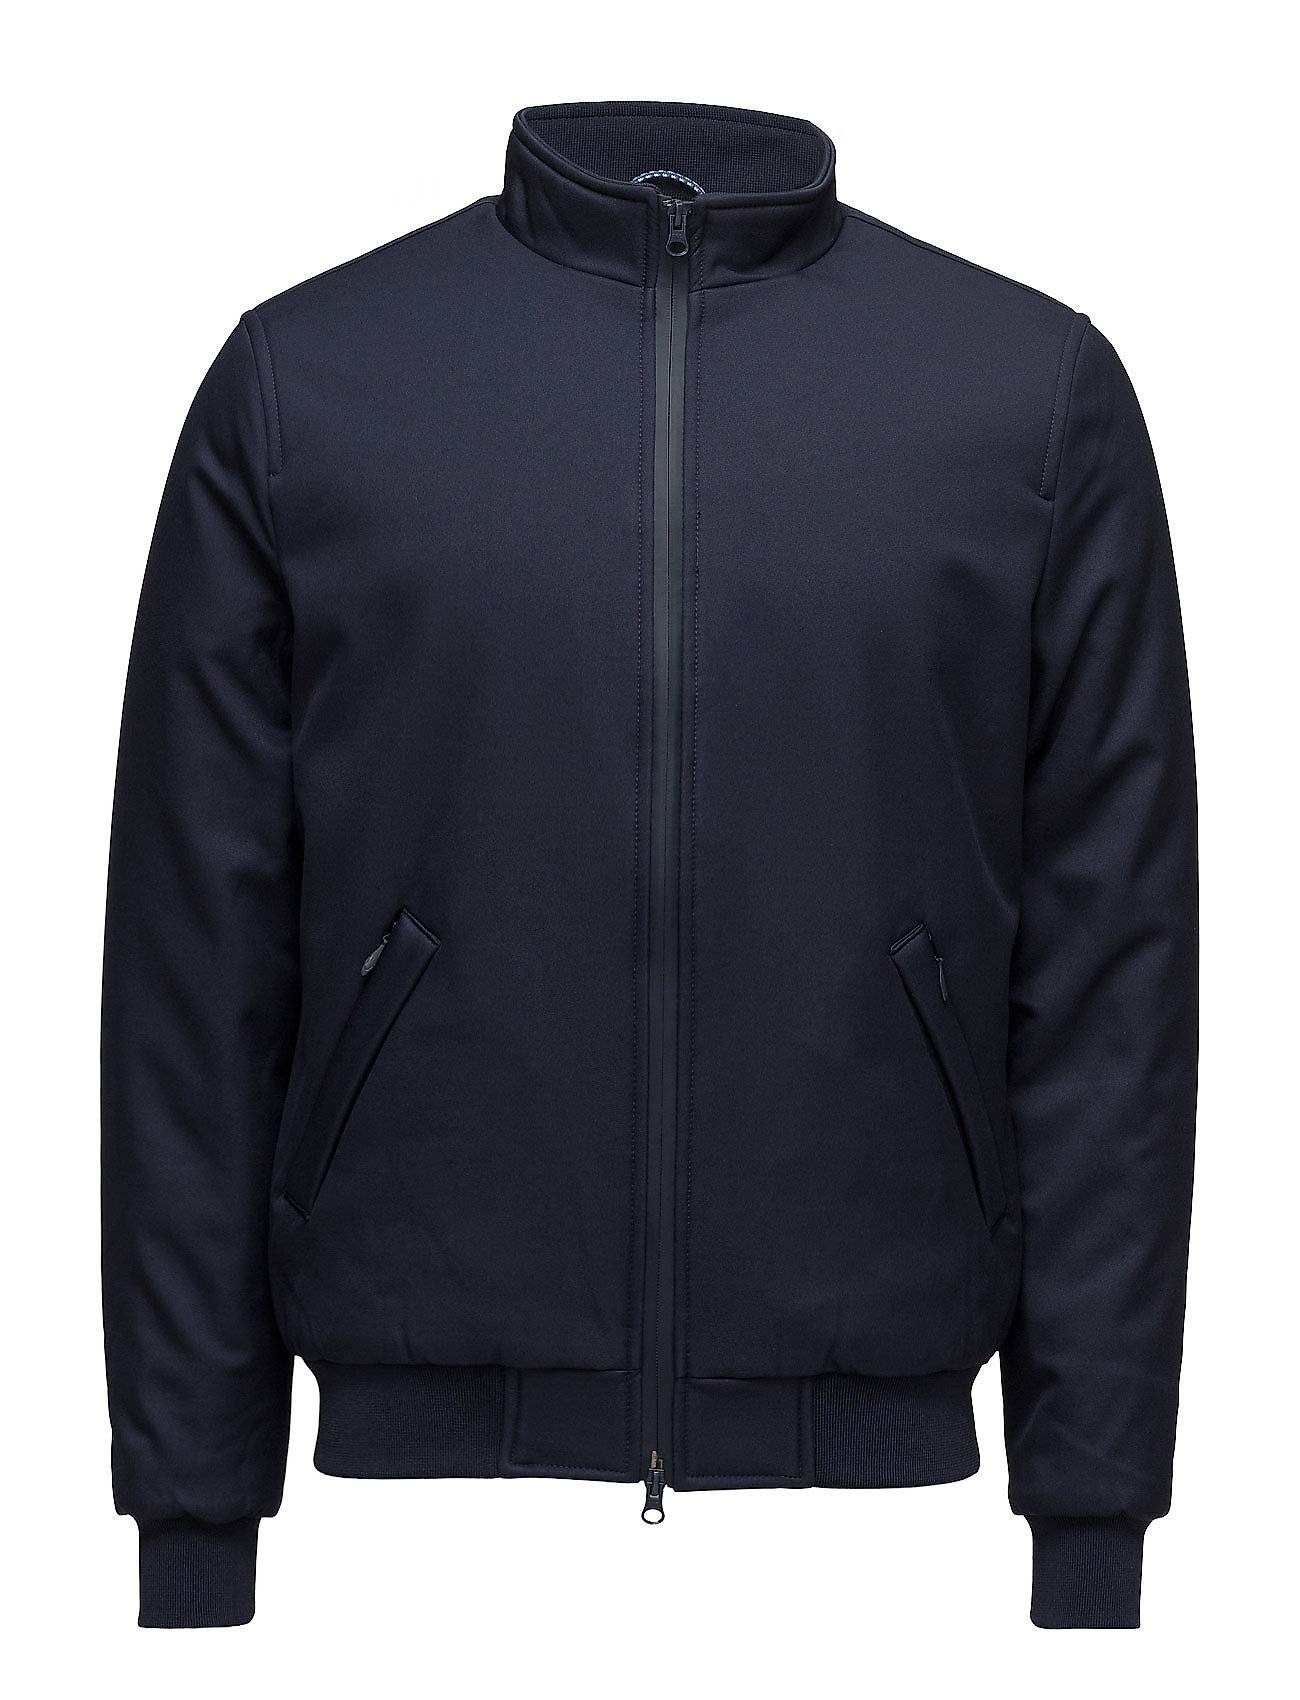 Knowledge Cotton Apparel Soft Shell Bomber Jacket - Grs